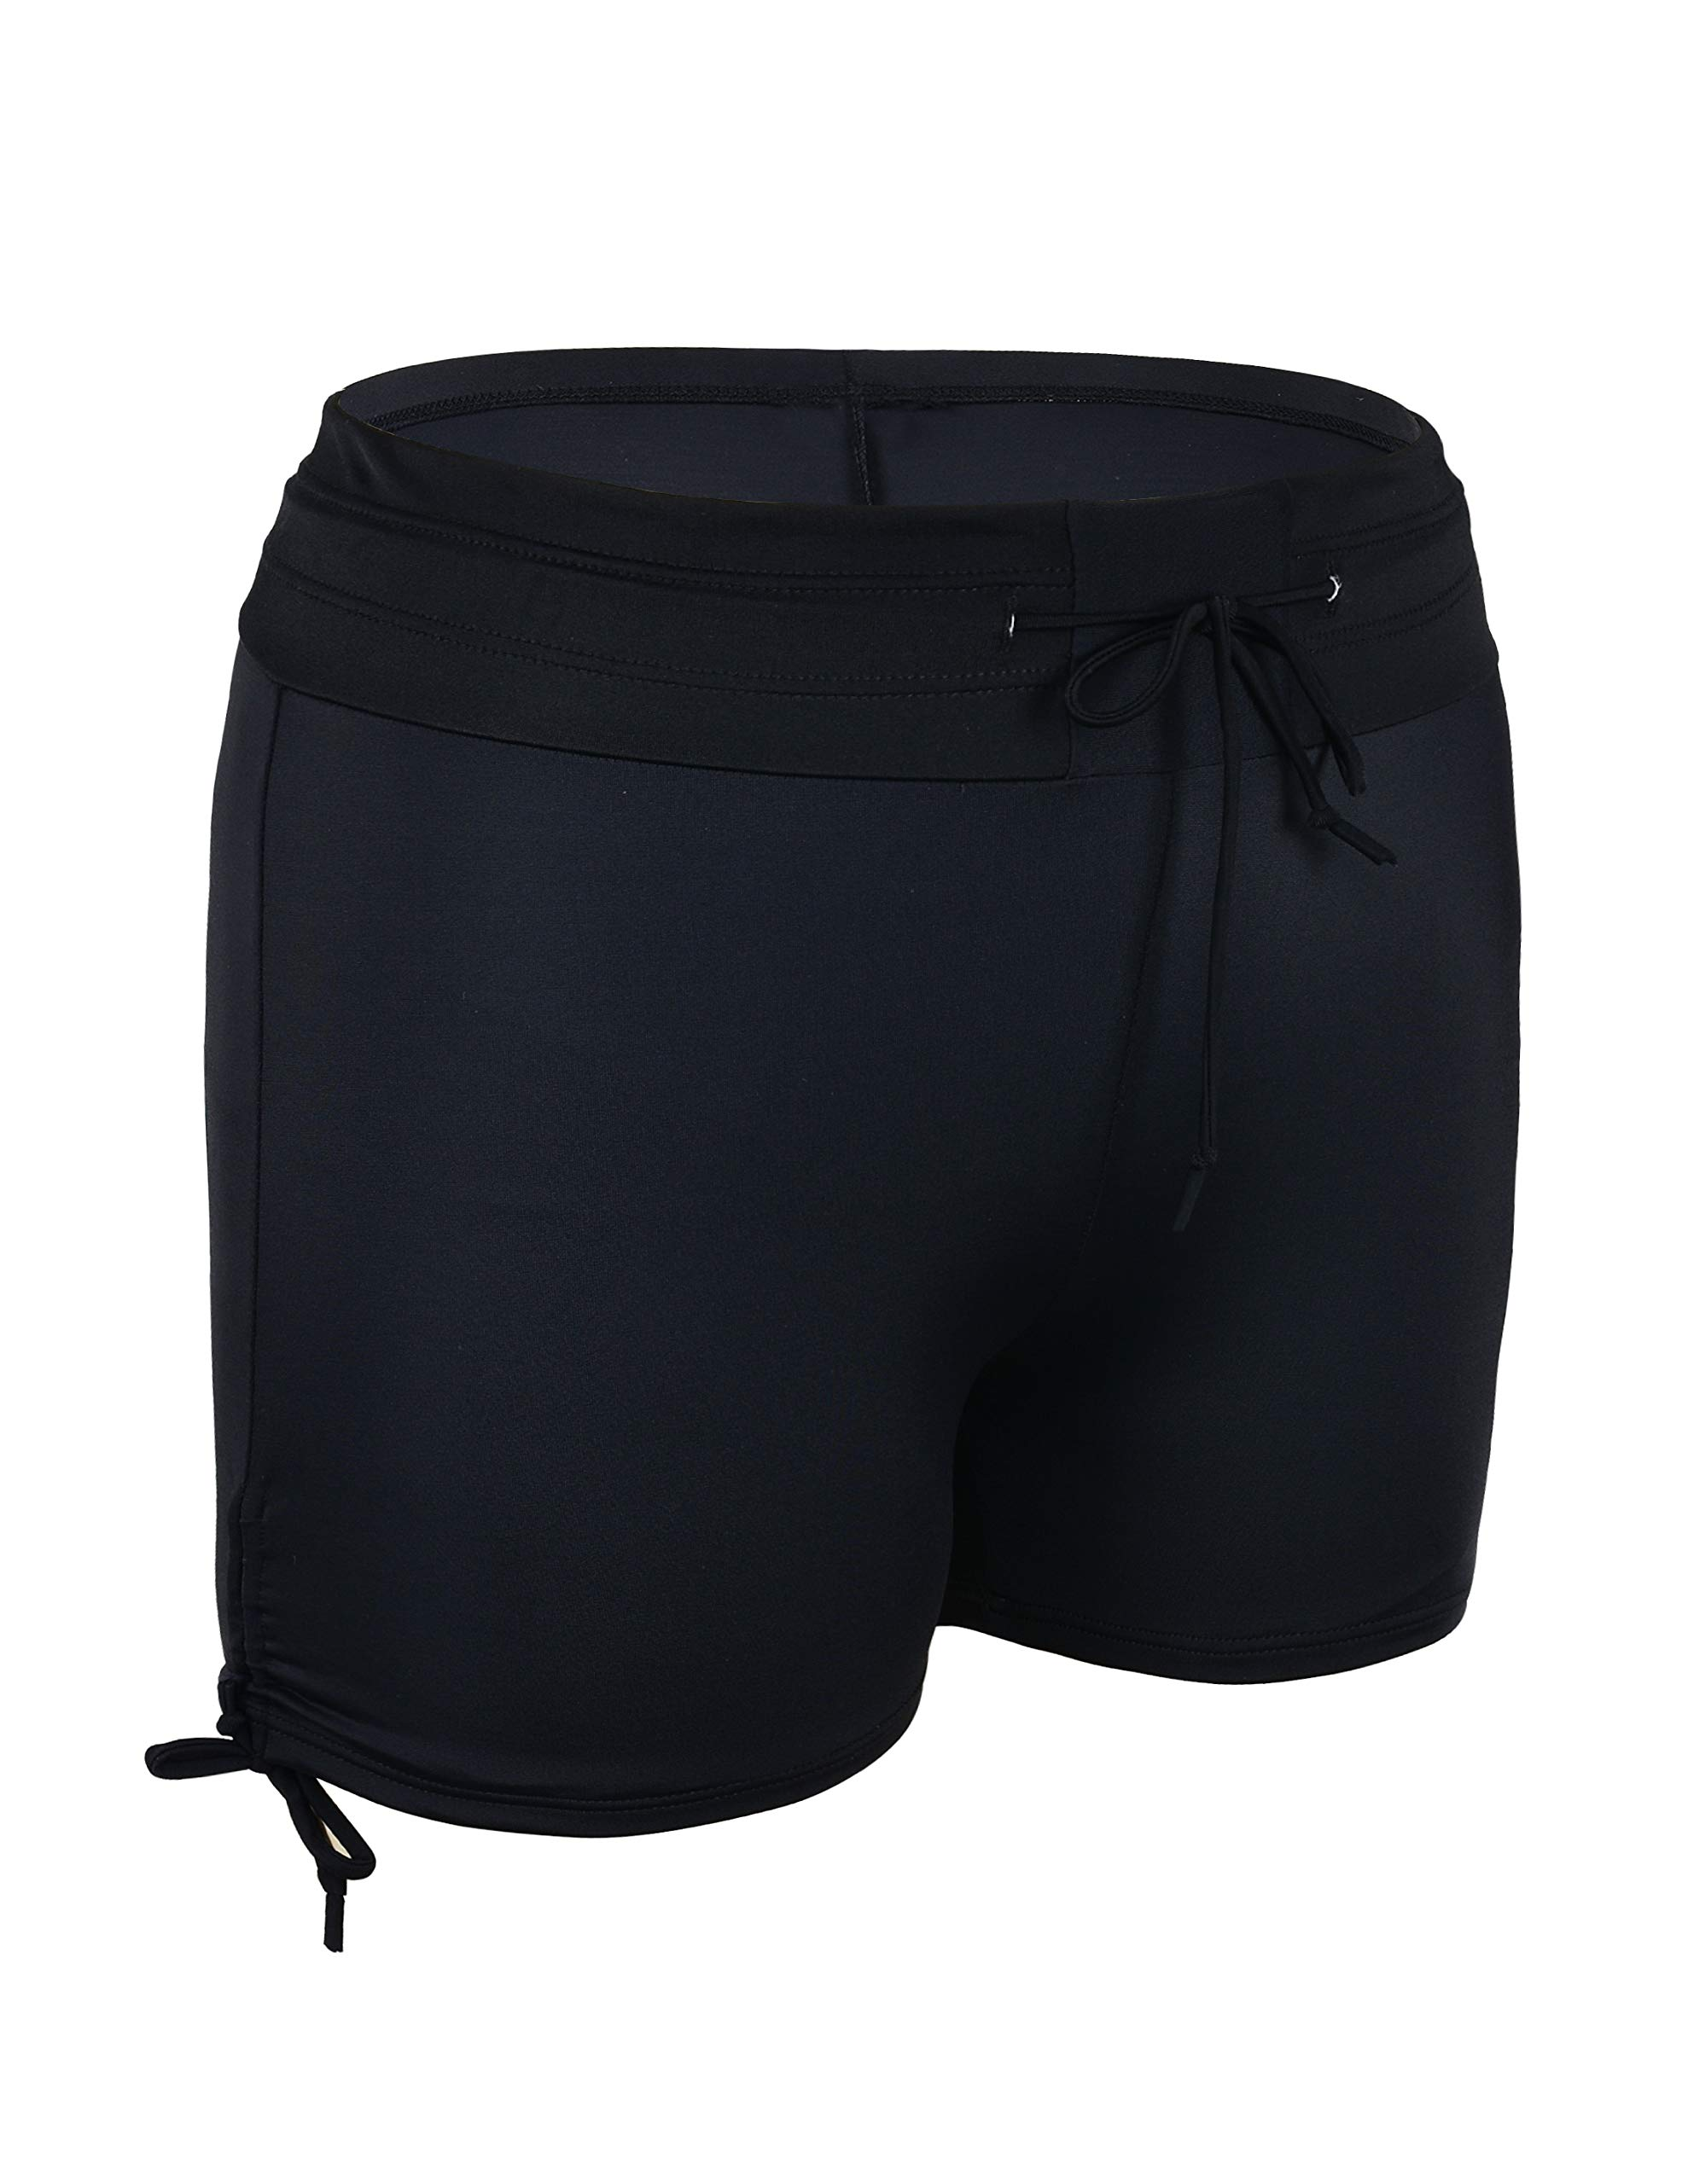 Septangle Womens Black Swim Sports Board Shorts Bottom with Side Ties,US 14 by Septangle (Image #2)